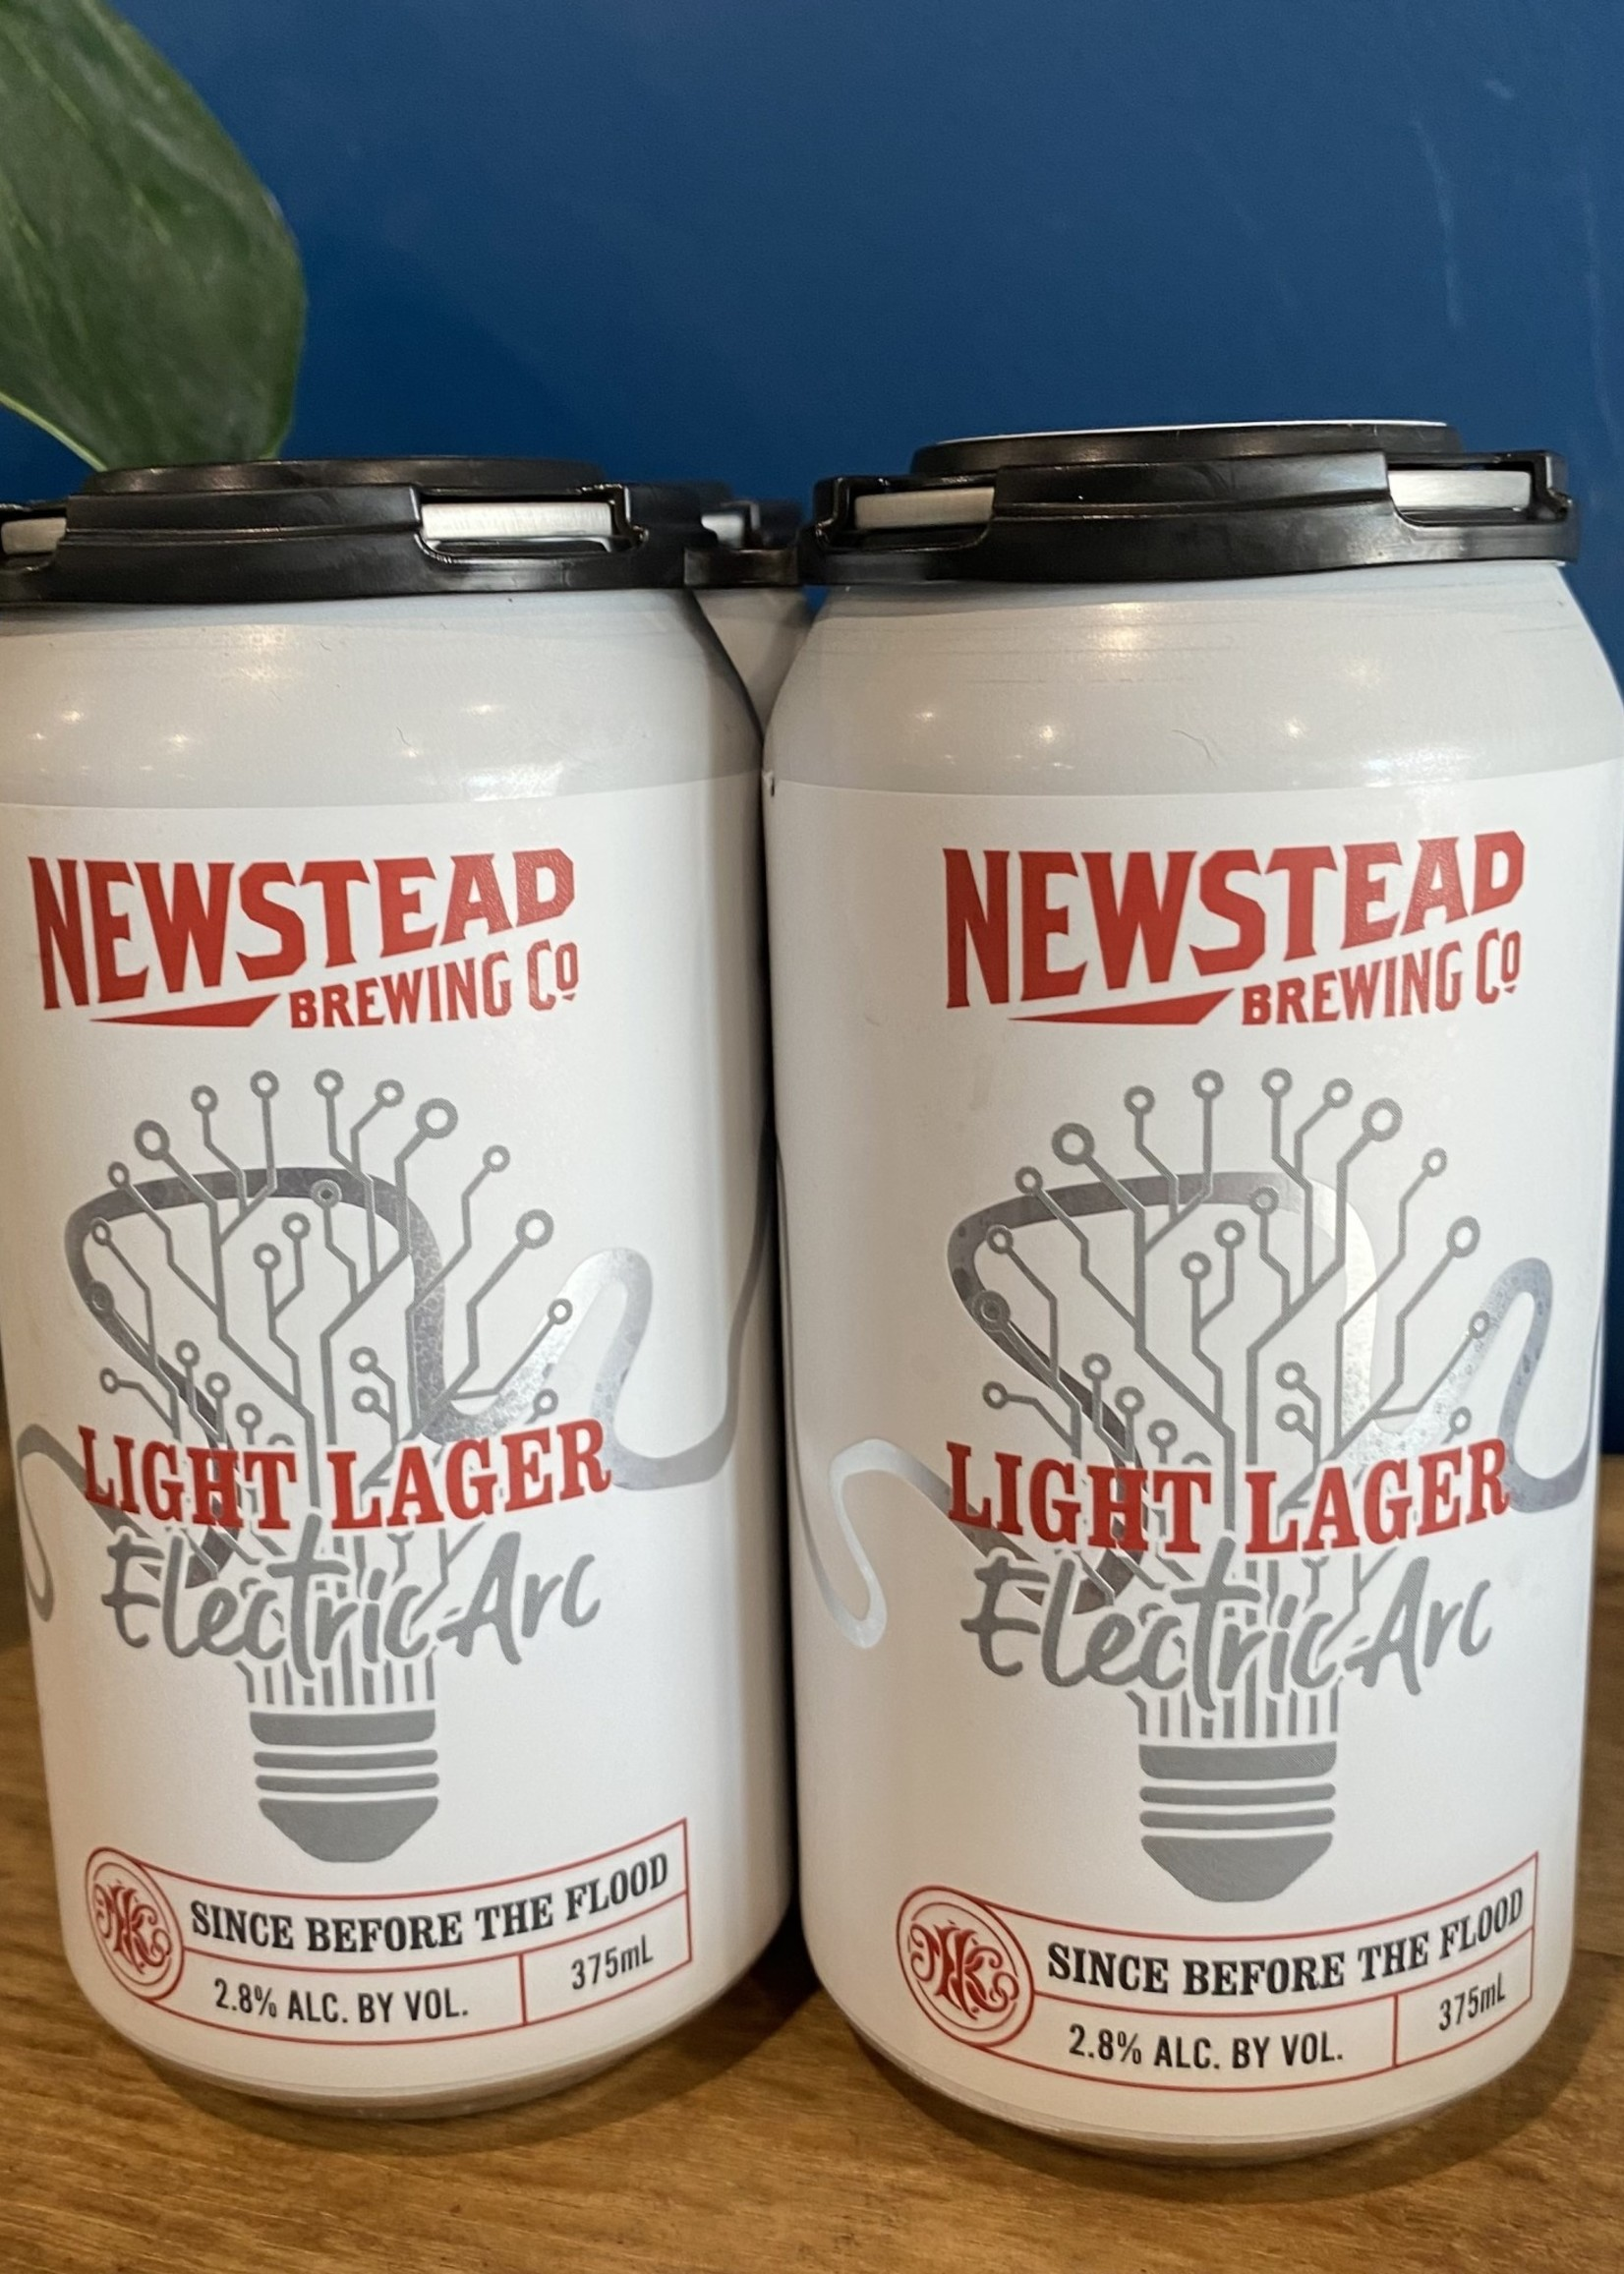 Newstead Brewing Co. Electric Arc Light Lager